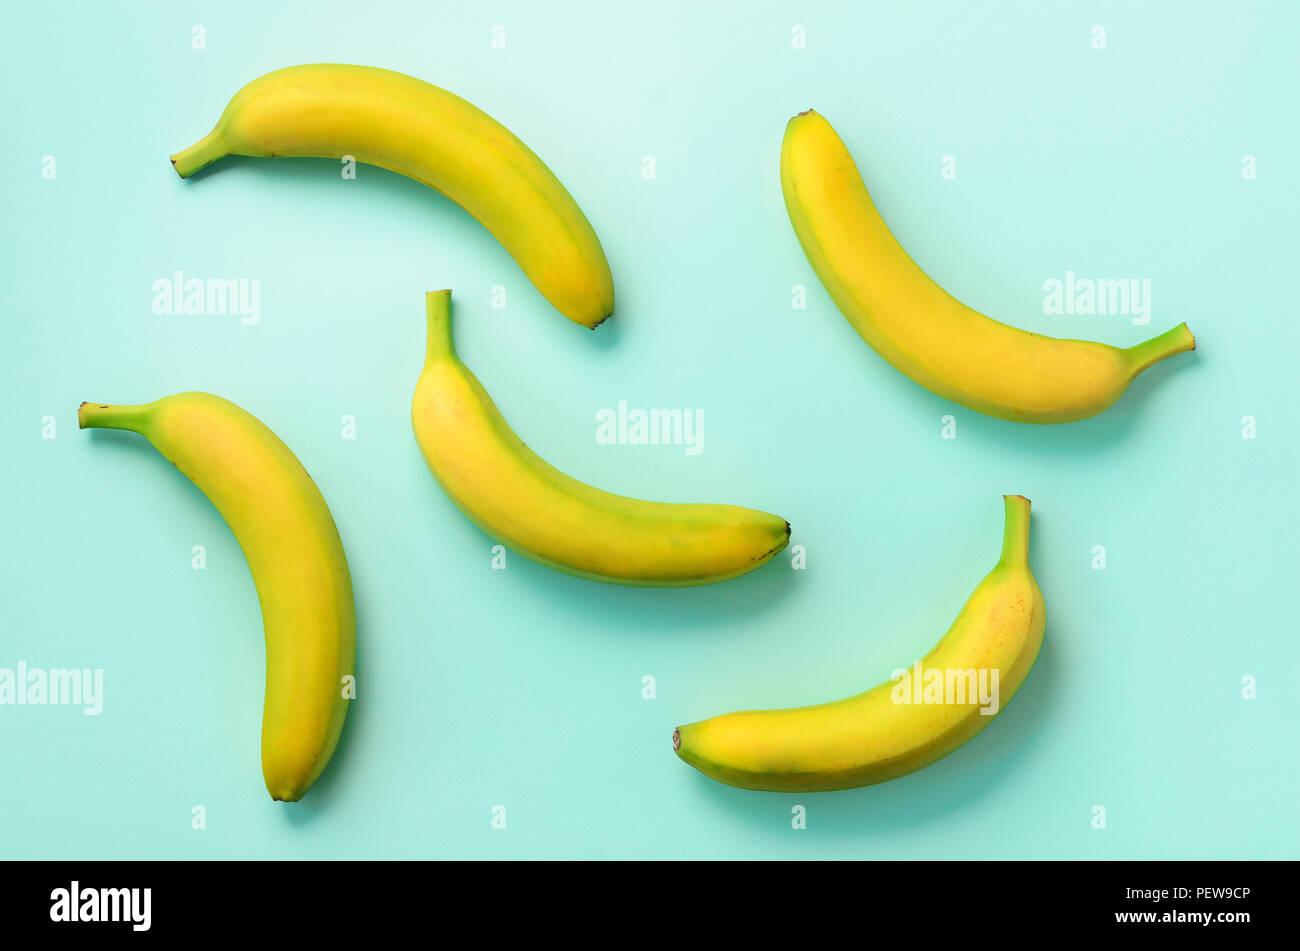 Colorful fruit pattern. Bananas over blue background. Top view. Pop art design, creative summer concept. Minimal flat lay style - Stock Image